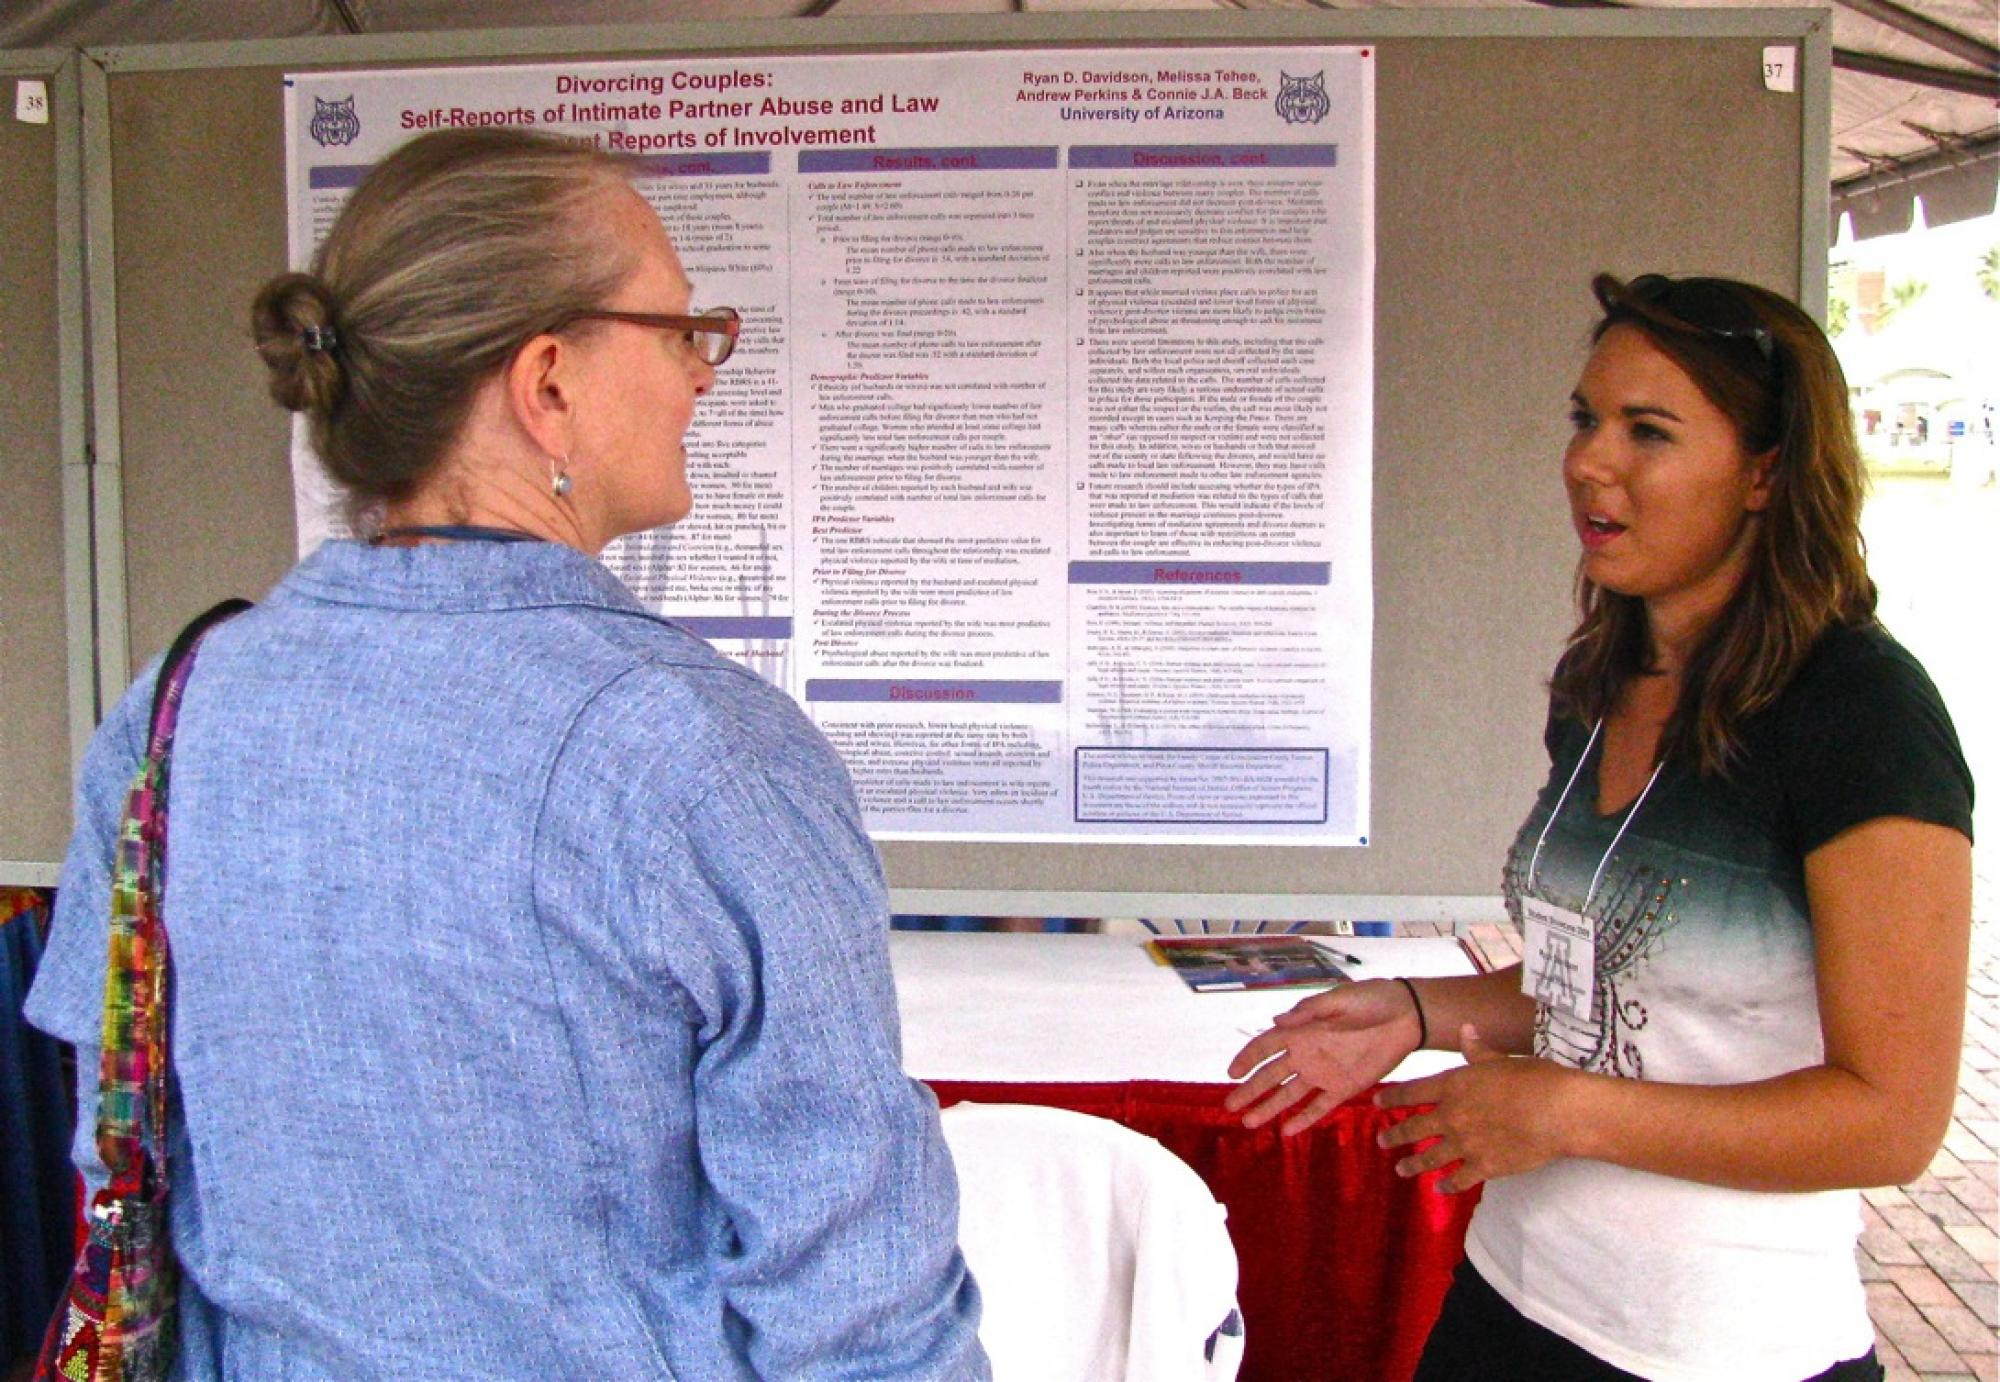 Ryan D. Davidson presents her research during the Graduate and Professional Student Council's Student Showcase.